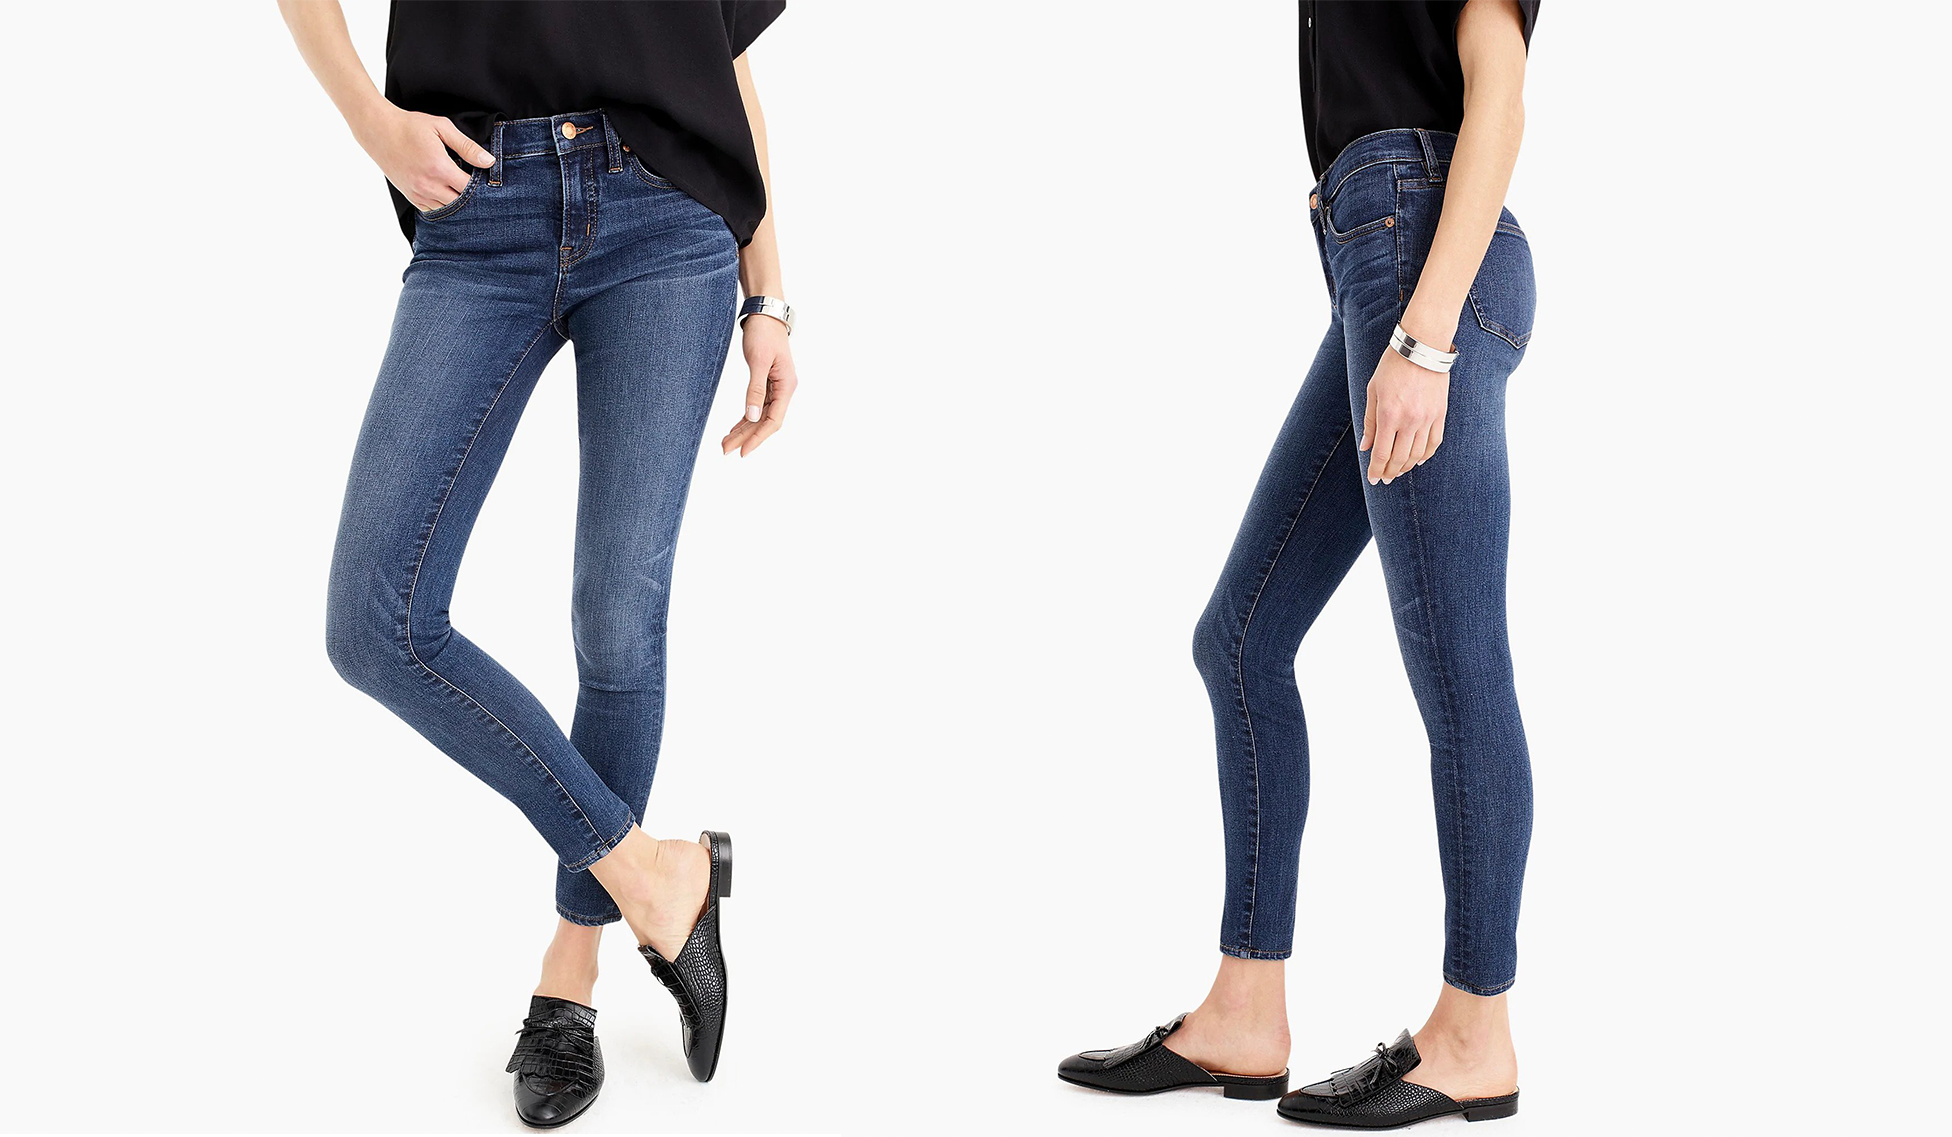 Front and side views of a woman wearing the Petite Toothpick jeans.